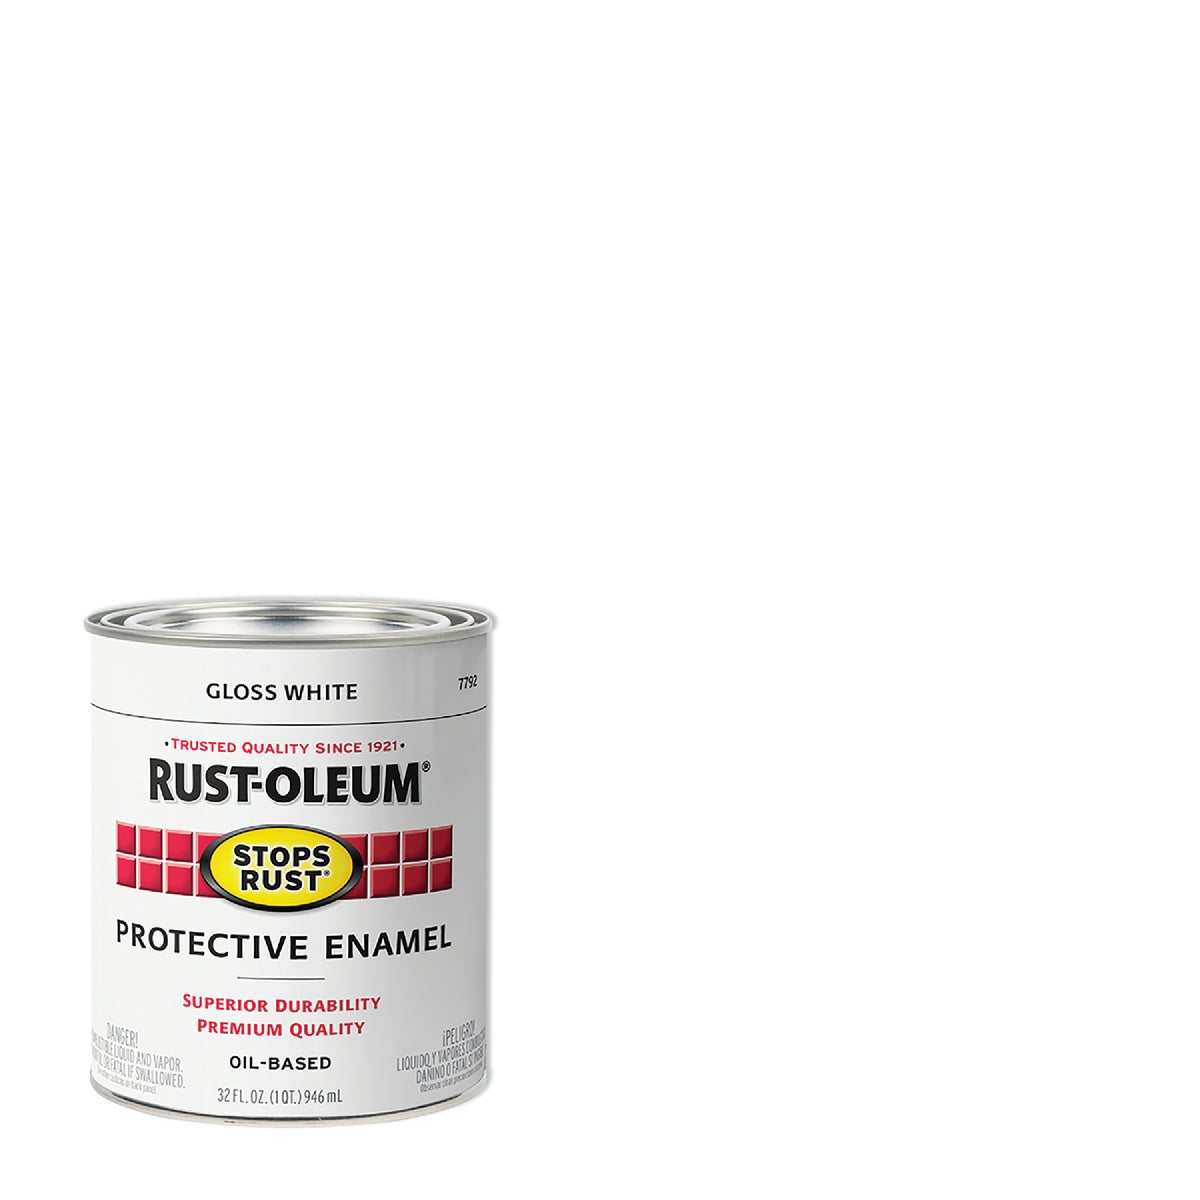 WHITE ENAMEL - 7792-504 by Rustoleum